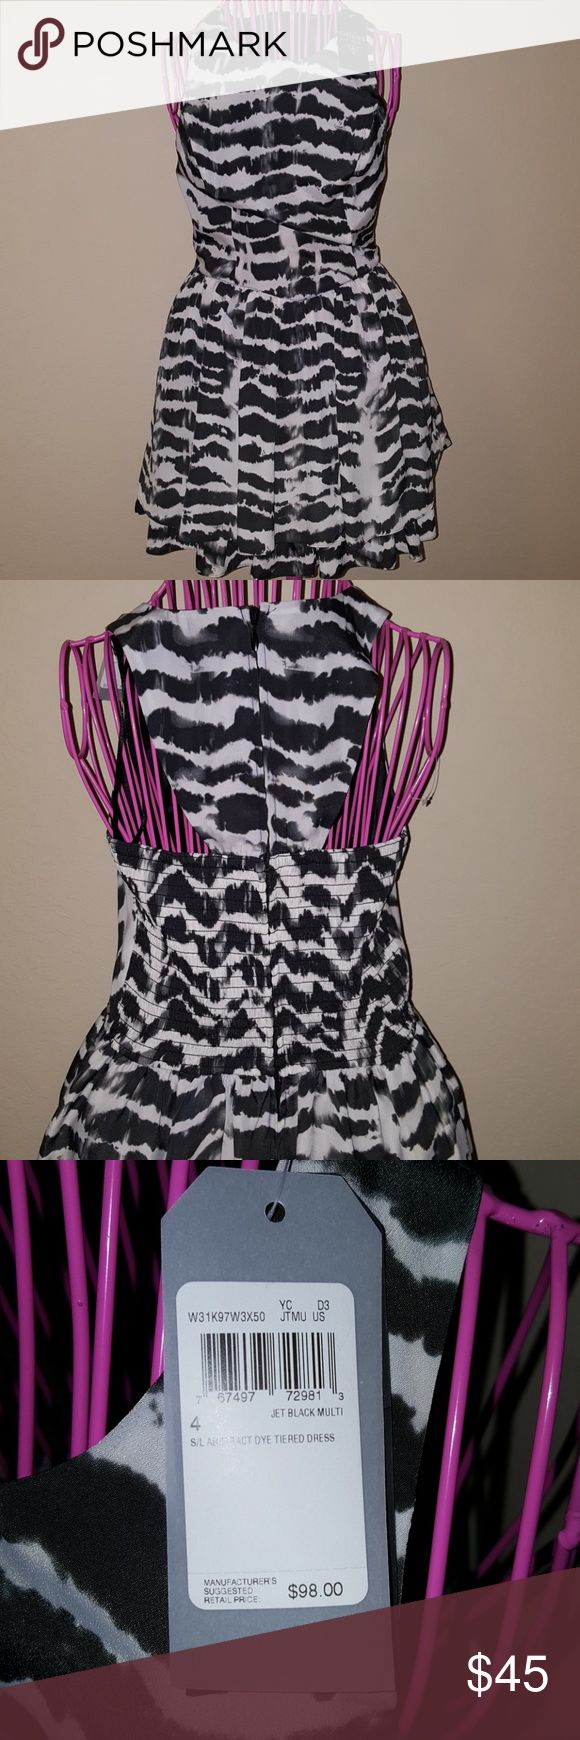 Guess dress Lovely black white and gray dress. Zipper in the back flowing bottom just perfect for holiday parties Guess Dresses